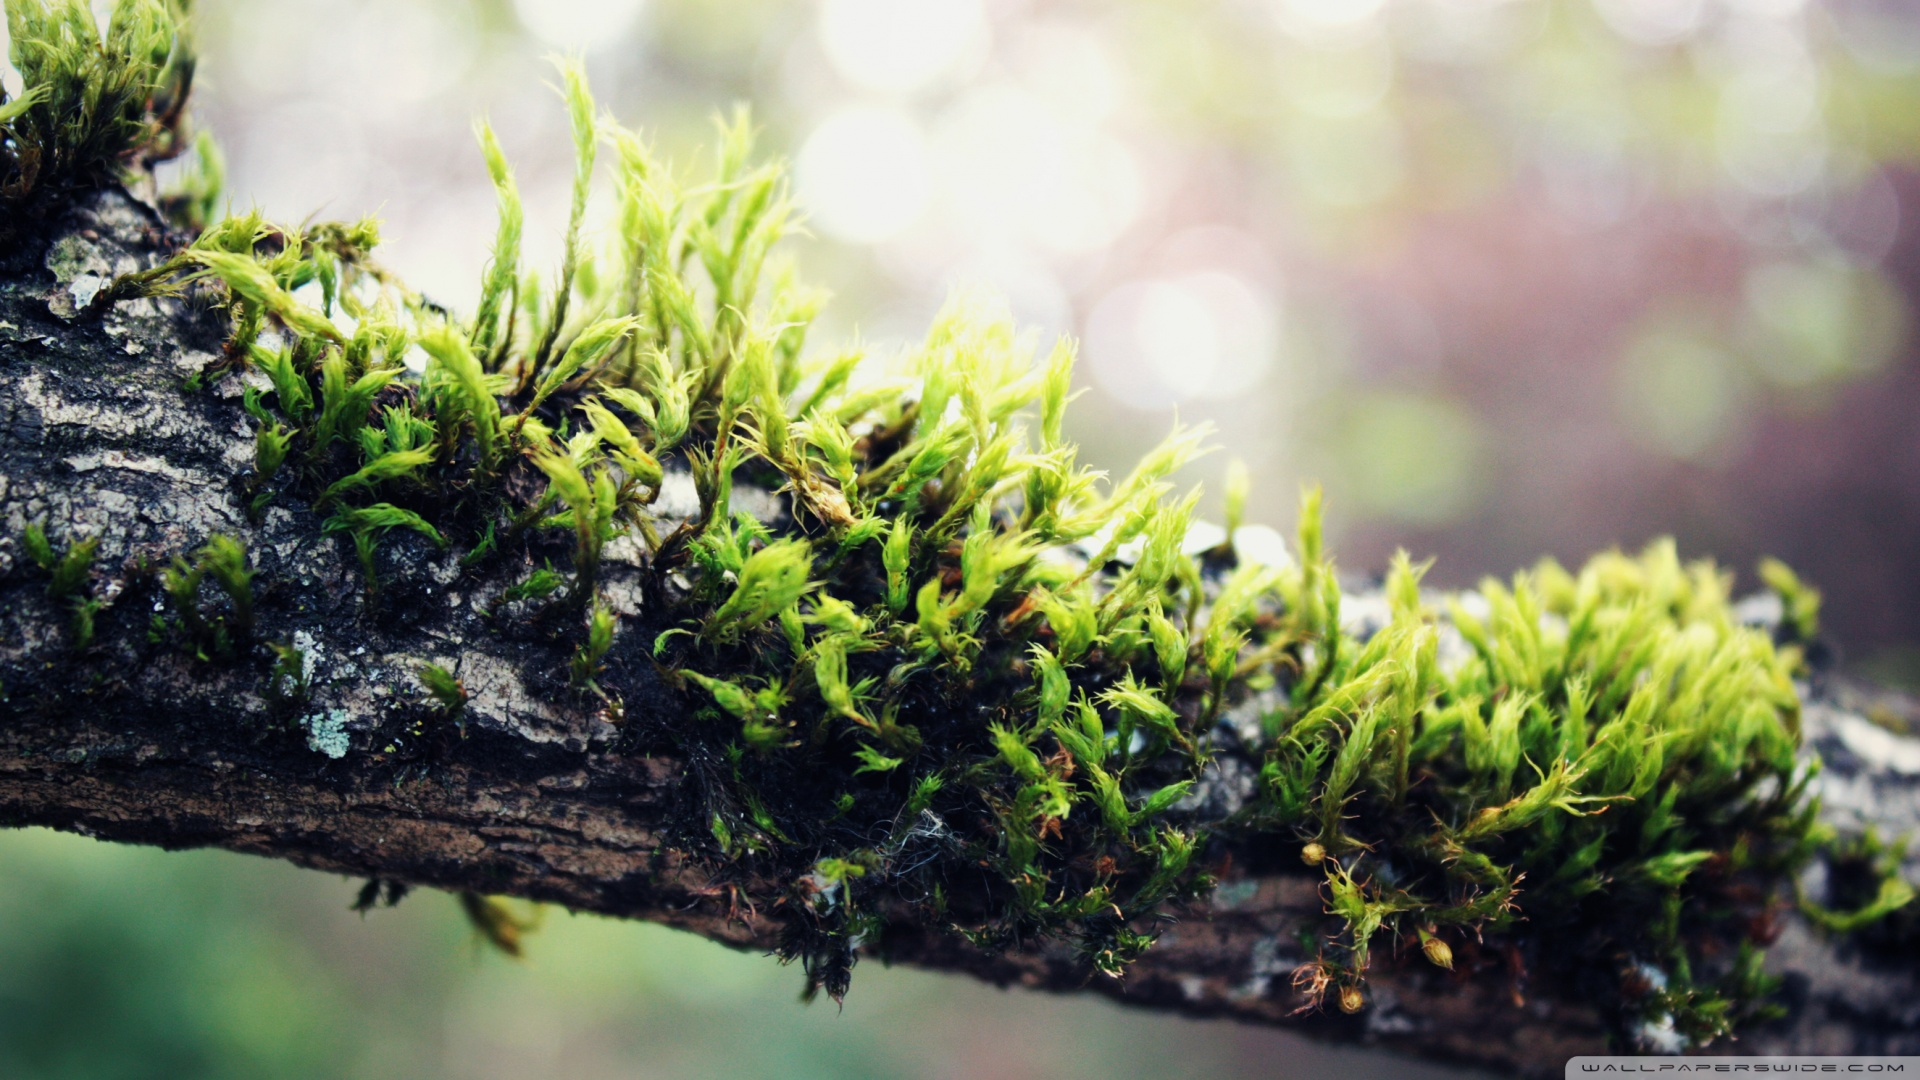 Moss Wallpaper HD